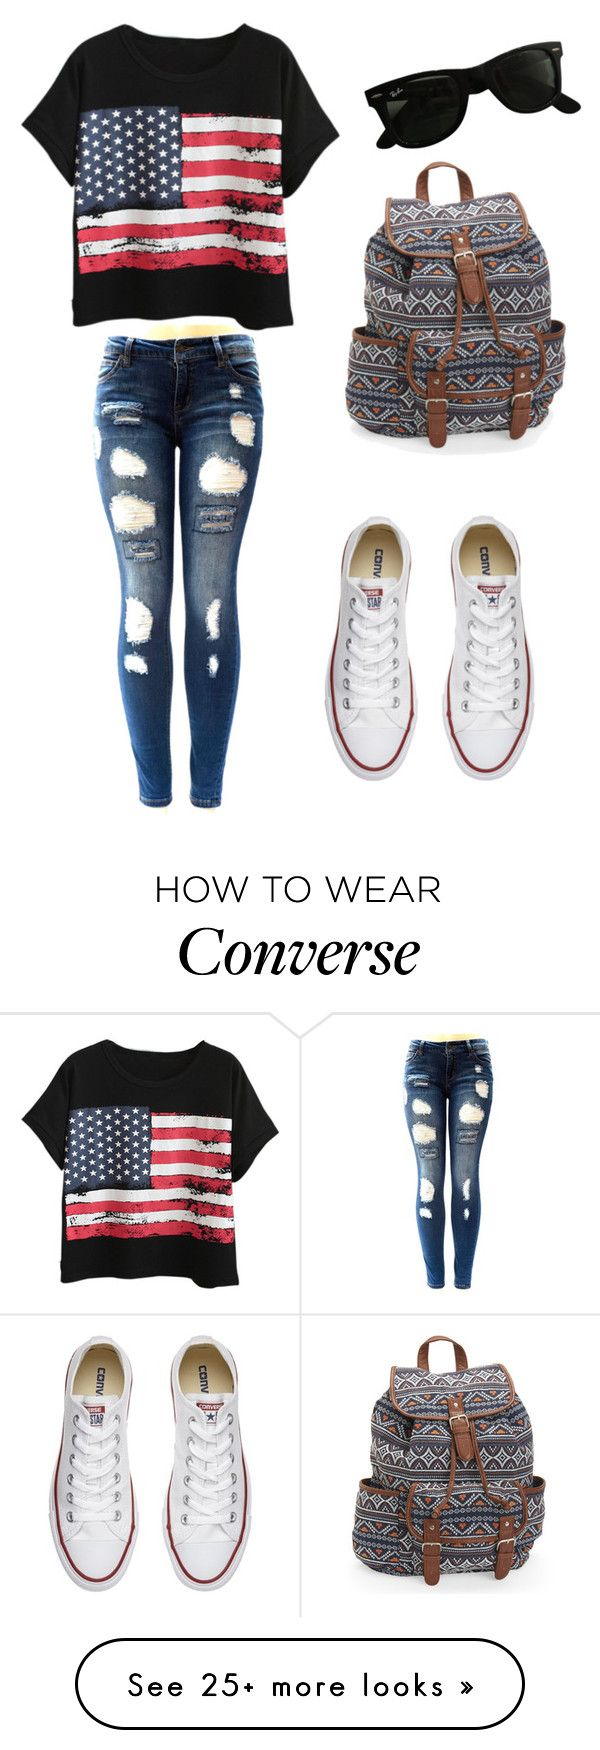 How to wear converse by sw94561 on Polyvore featuring Chicnova Fashion, Converse, Ray-Ban and Aéropostale